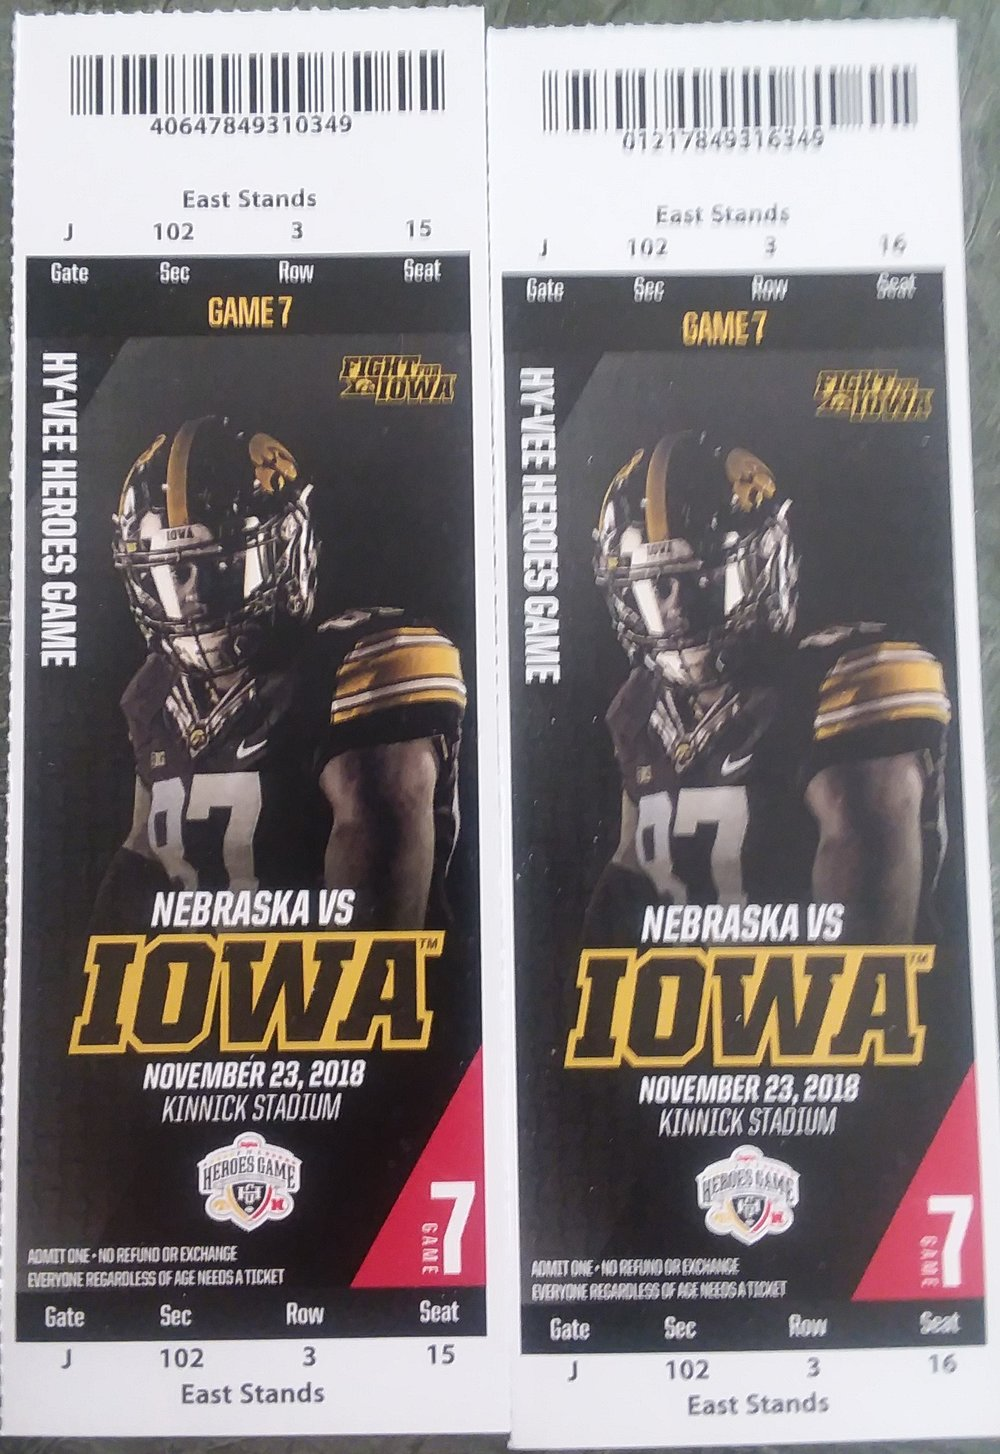 Iowa Football Game Day Package - Winner Receives Below Items1. 2 - turkey legs from Big Ass Turkey Legs located on Melrose Avenue on game day – Donated by: Craig Ireland2. 2 - growlers and refills – Donated by: 515 Brewing3. 2 - Iowa vs Nebraska football tickets – Donated by: Justin McGuinty (Section 102 Row 3 Seat 15 & 164. 1 - night stay at Graduate Hotel in Iowa City – Donated by: Graduate Hotels5. 1 – free pizza – Donated by: The Airliner